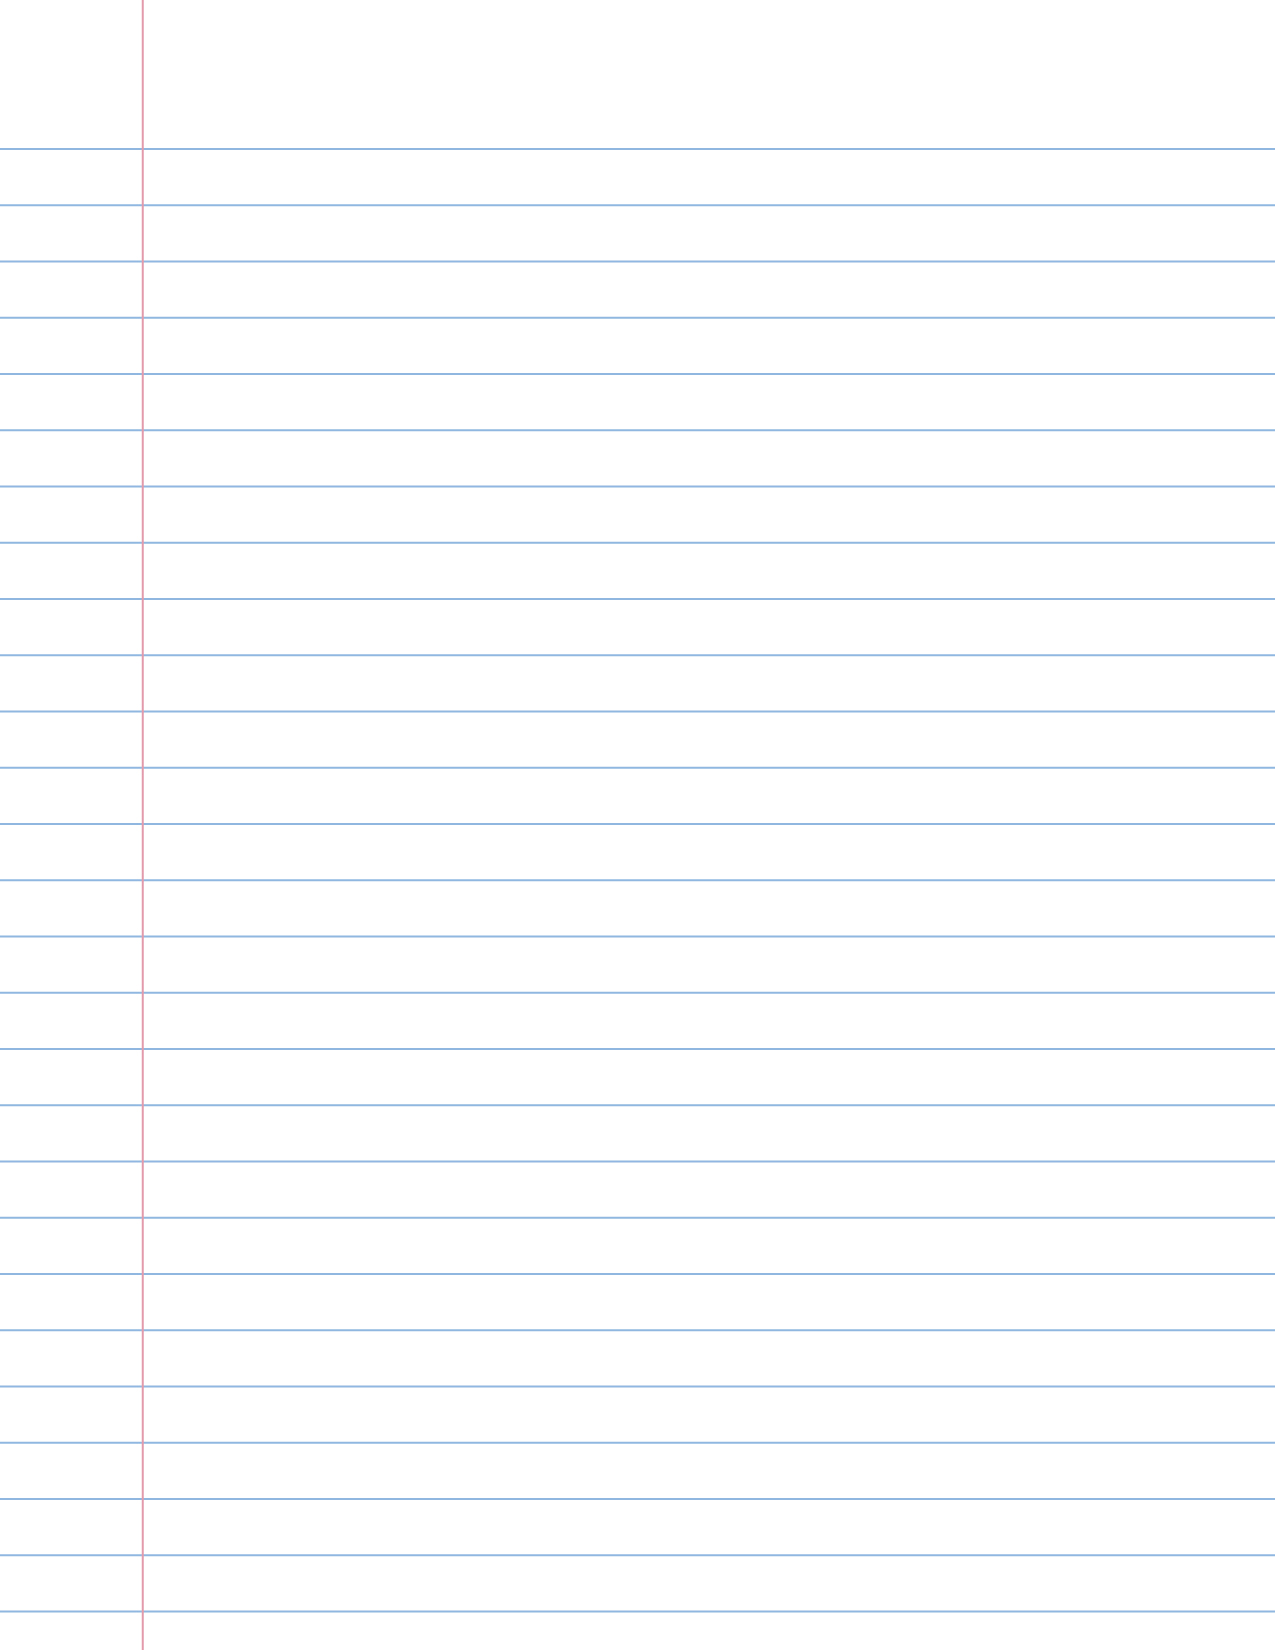 Ruled Paper Template displaying 17 gt images for wide ruled lined – Free Lined Paper to Print